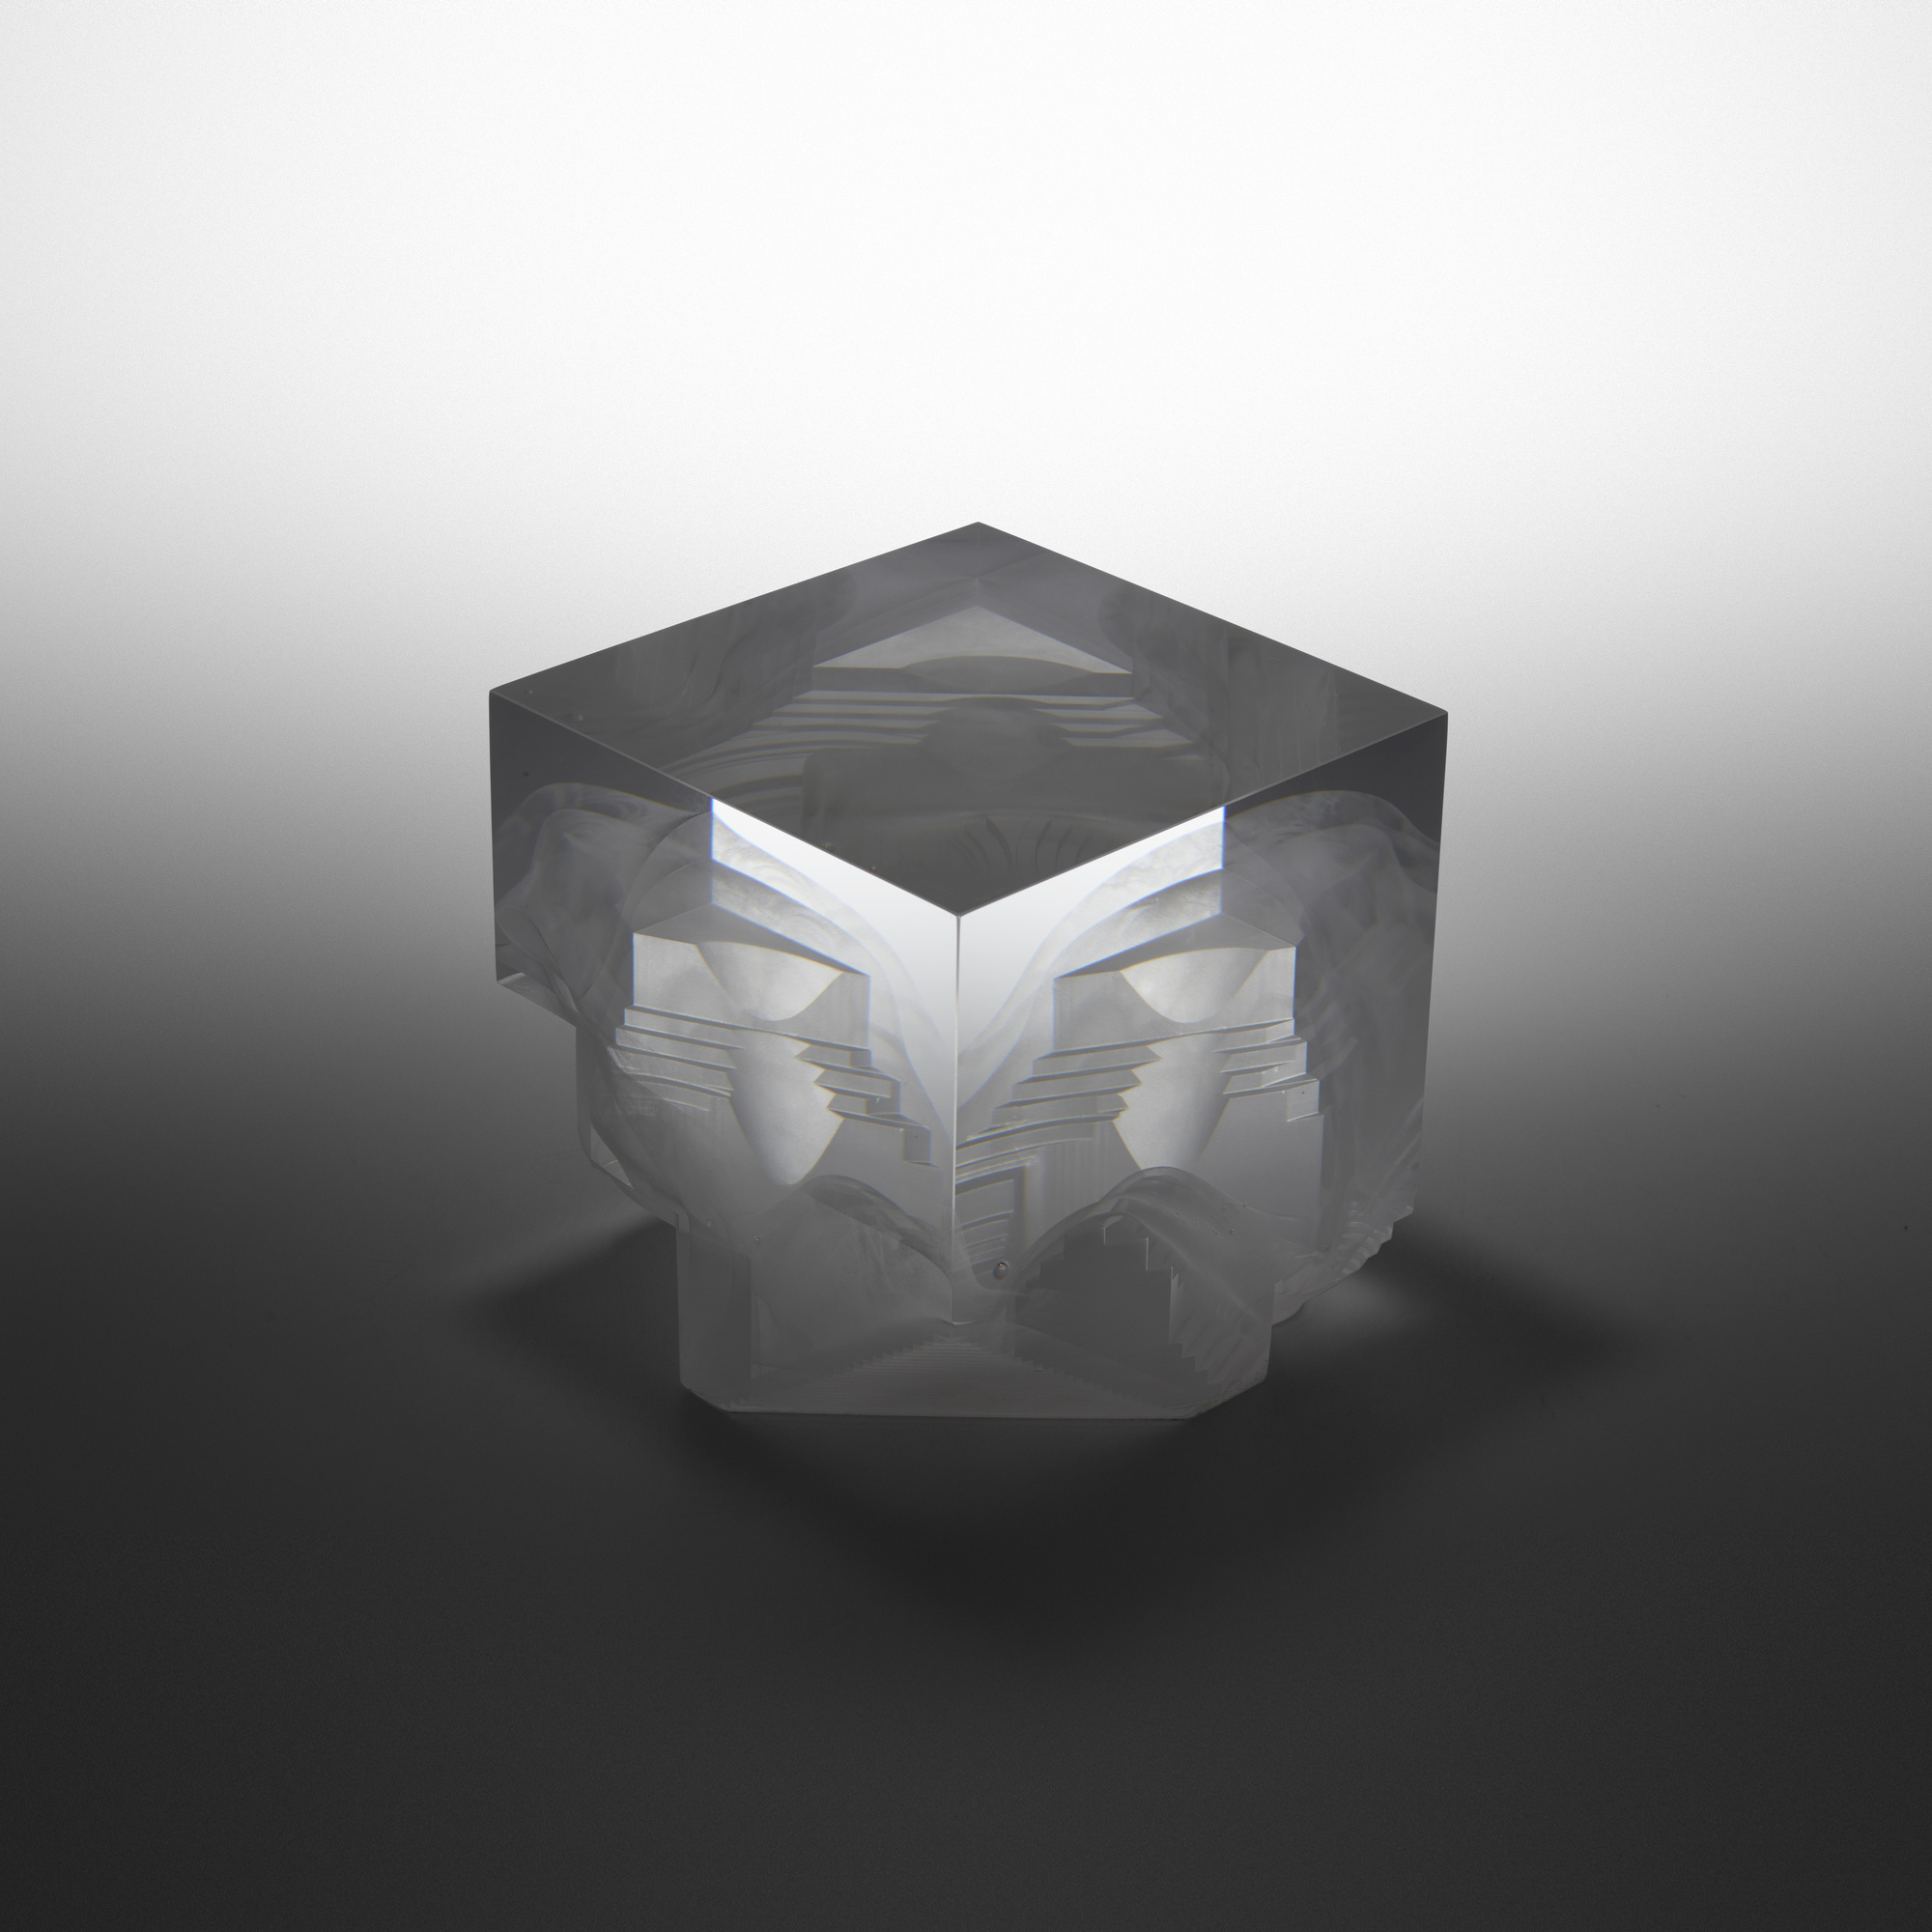 158: Steven Weinberg / Cube no. 981201 (1 of 5)